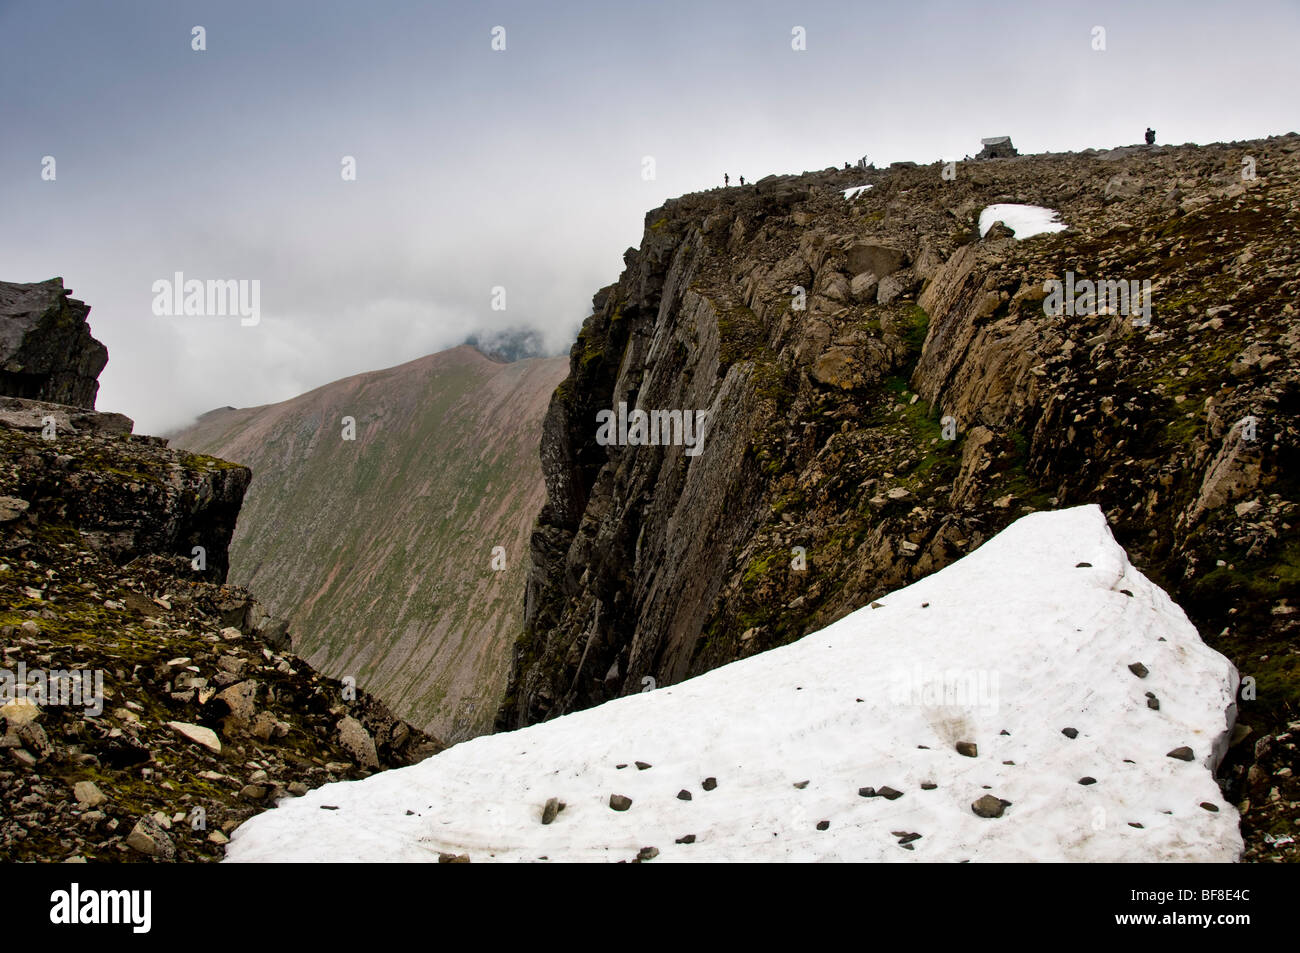 view of north face and summit of Ben Nevis from snow covered plateau at head of Observatory Gully. - Stock Image